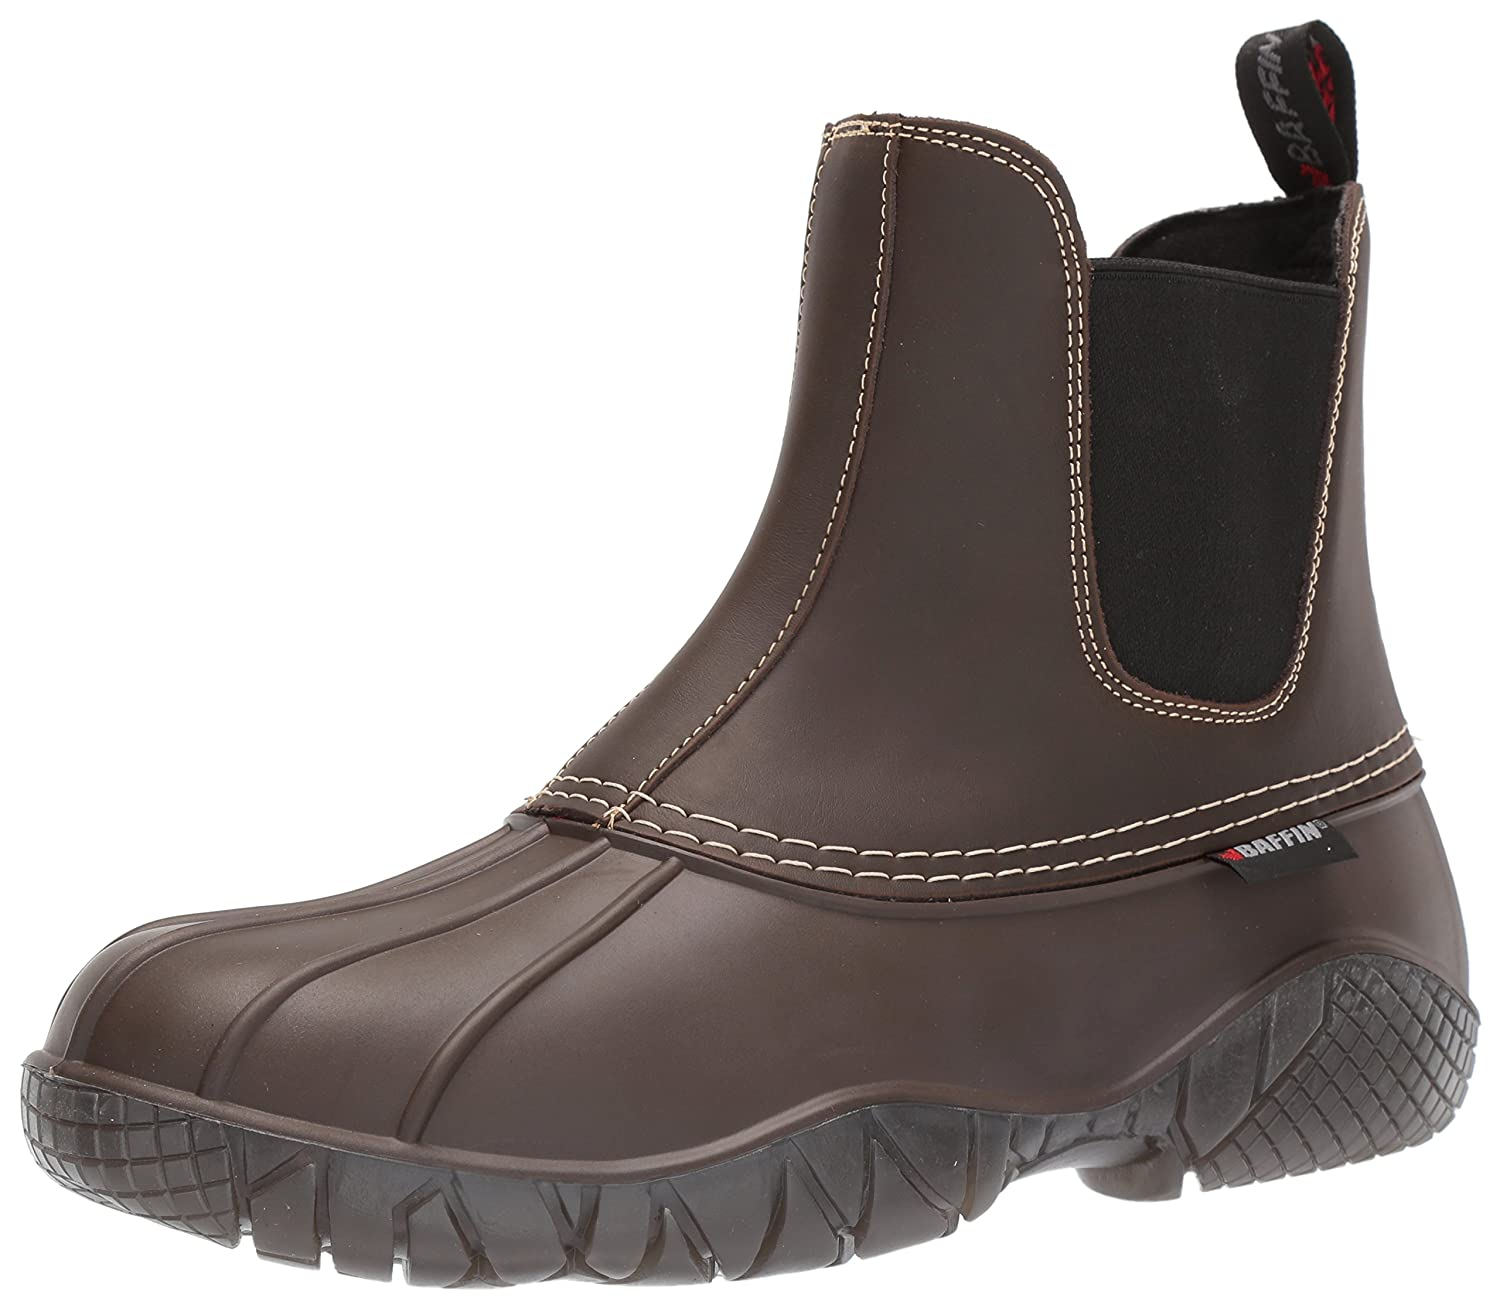 Baffin Men's Huron Rain Boots, Brown, 8 M US Baffin Mens LAKEM001